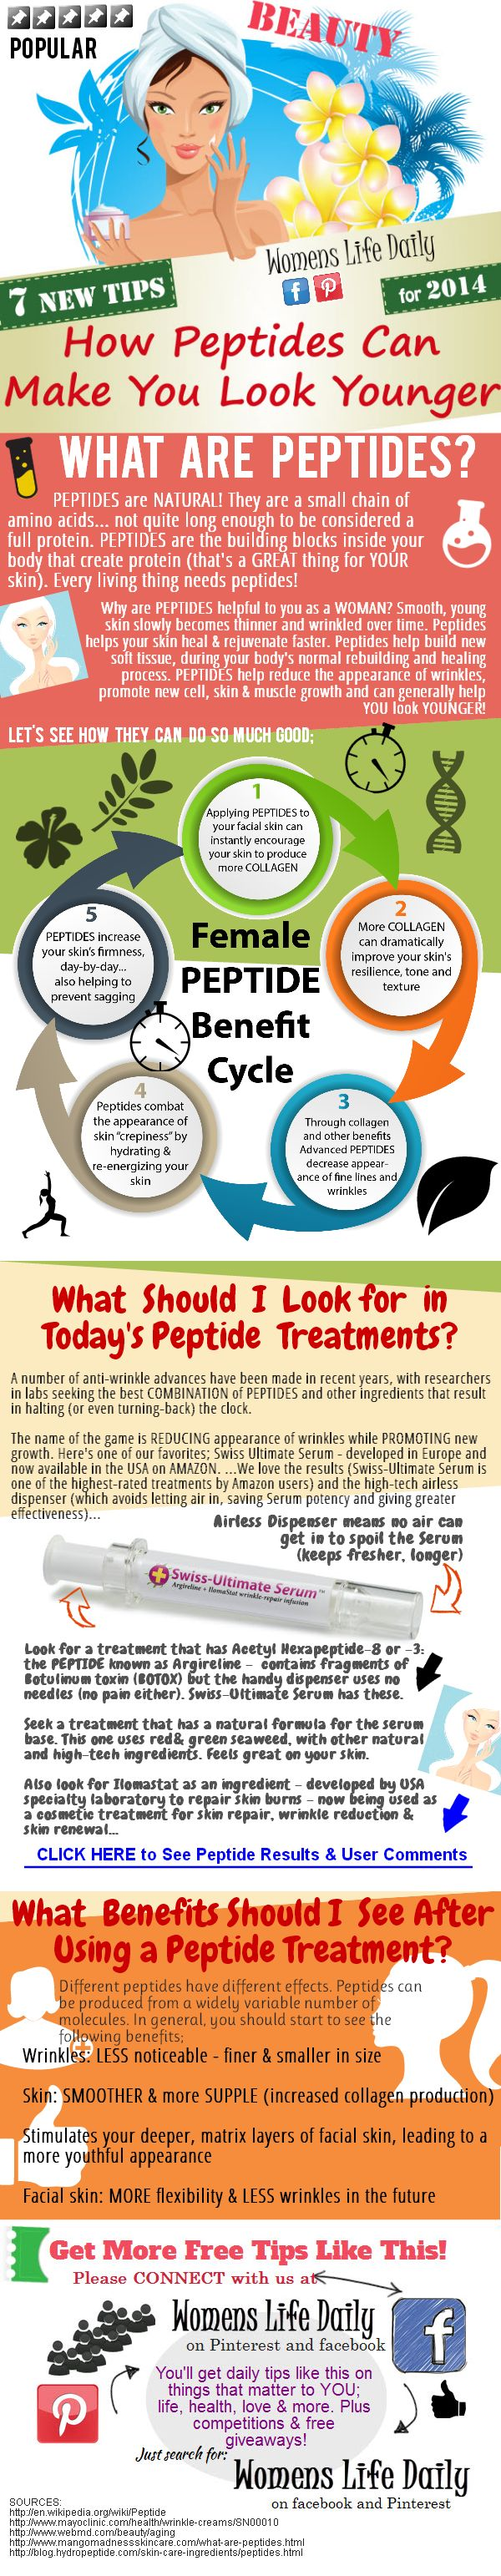 7 Health and Anti-Wrinkle Benefits of Peptides for Women, from Womens Life Daily